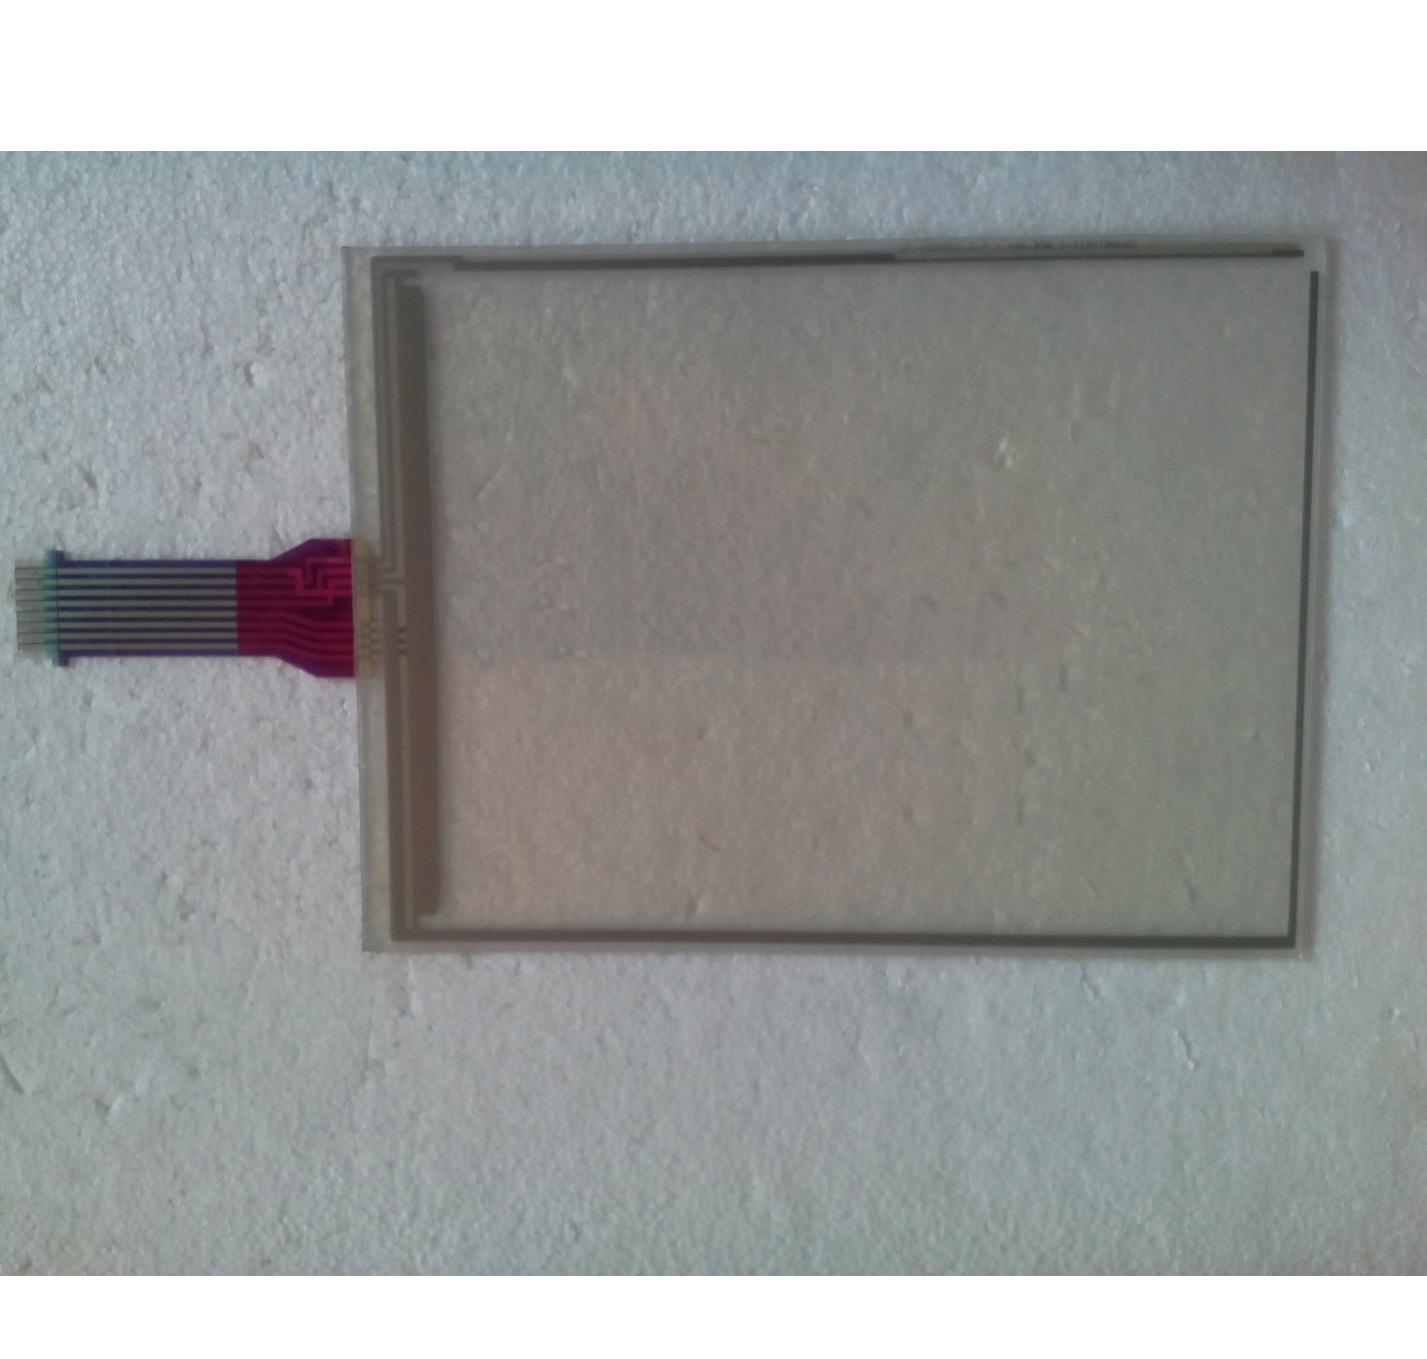 New 8 Wires 4 484 038 KGJ 01 Touch Screen Digitizer